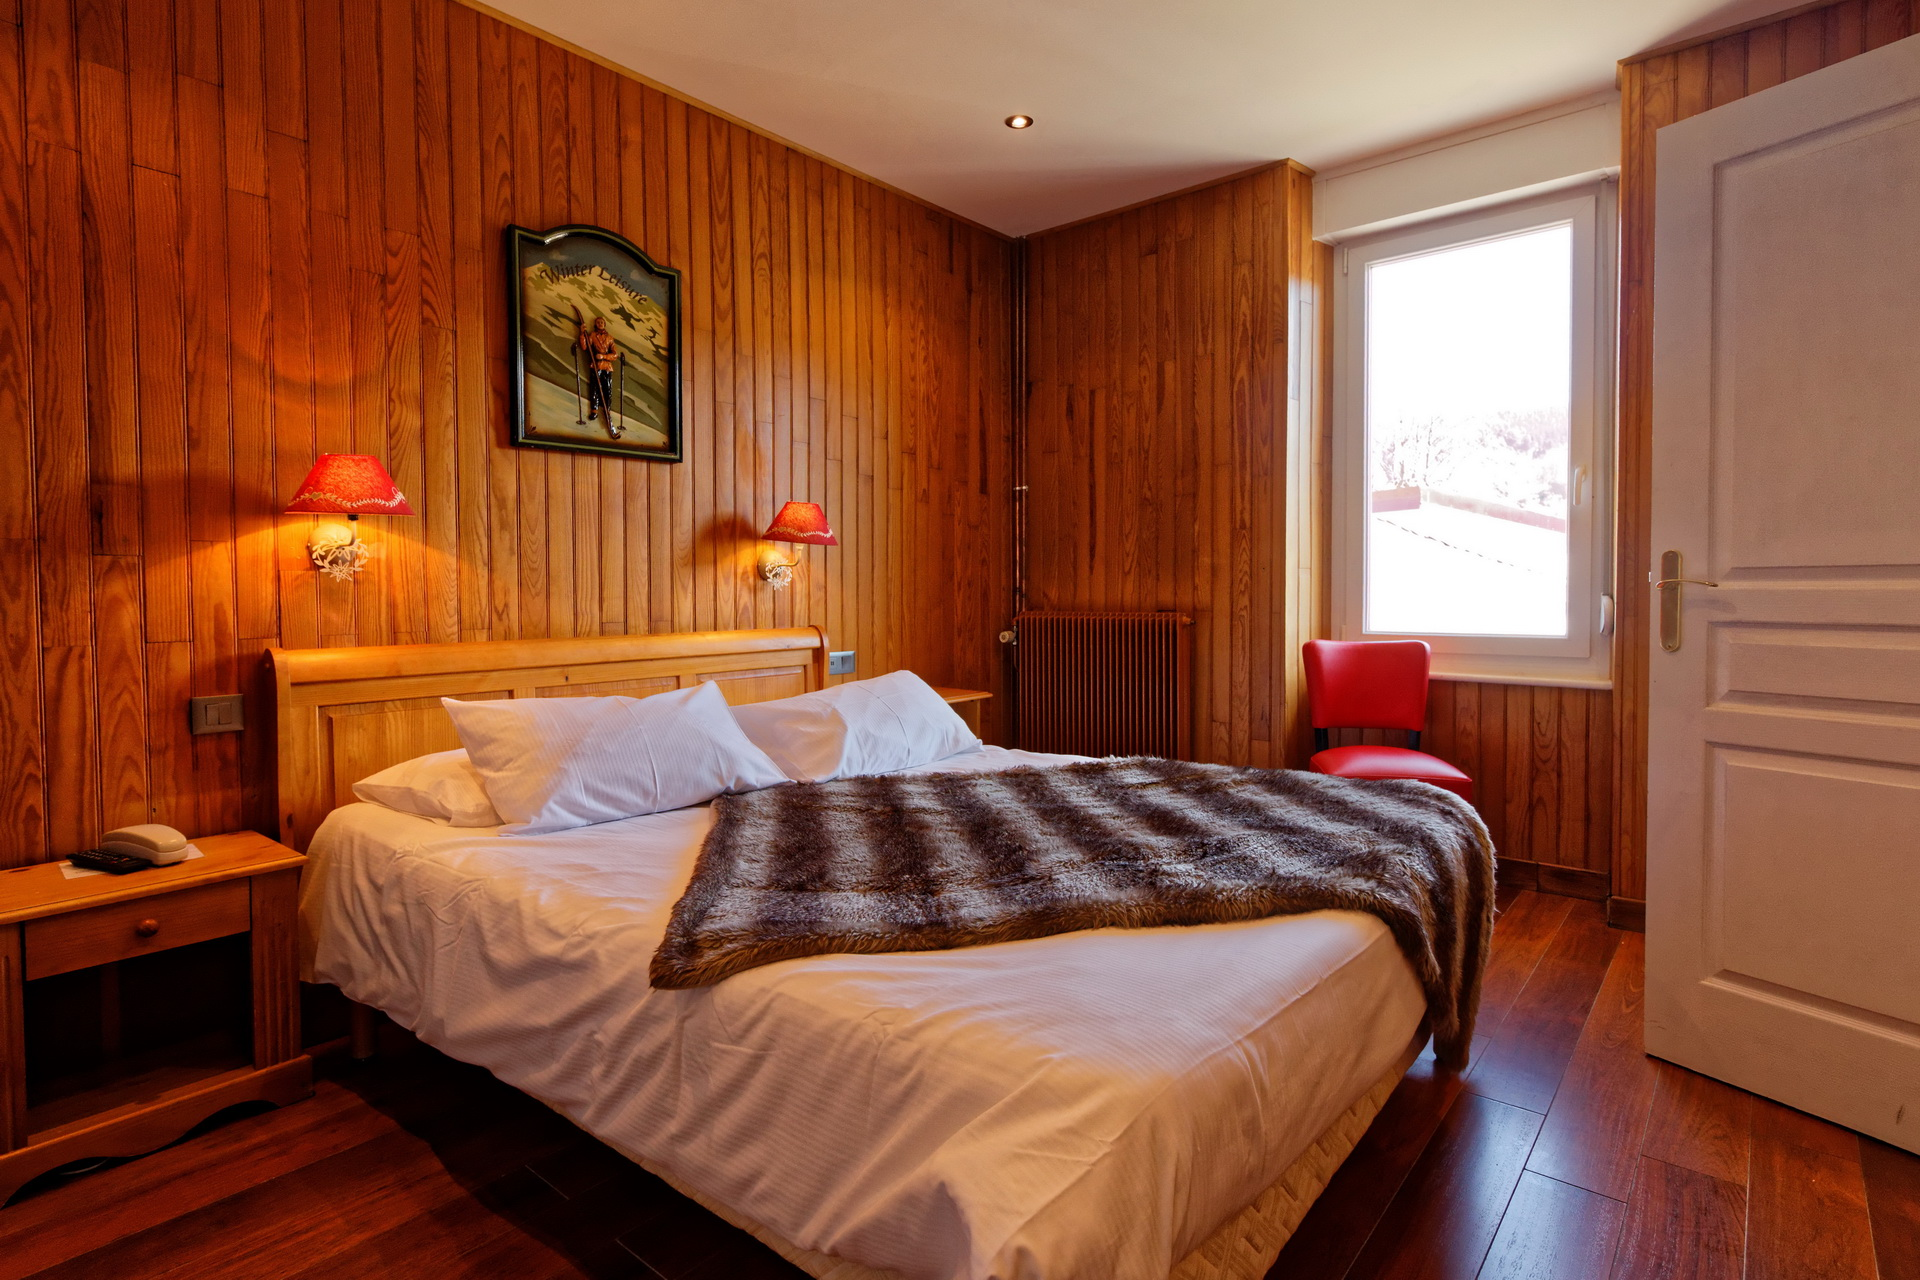 Chambres h tel g rardmer famille 4 personnes h tel des bains g rardmer - Hotel chambre 4 personnes ...